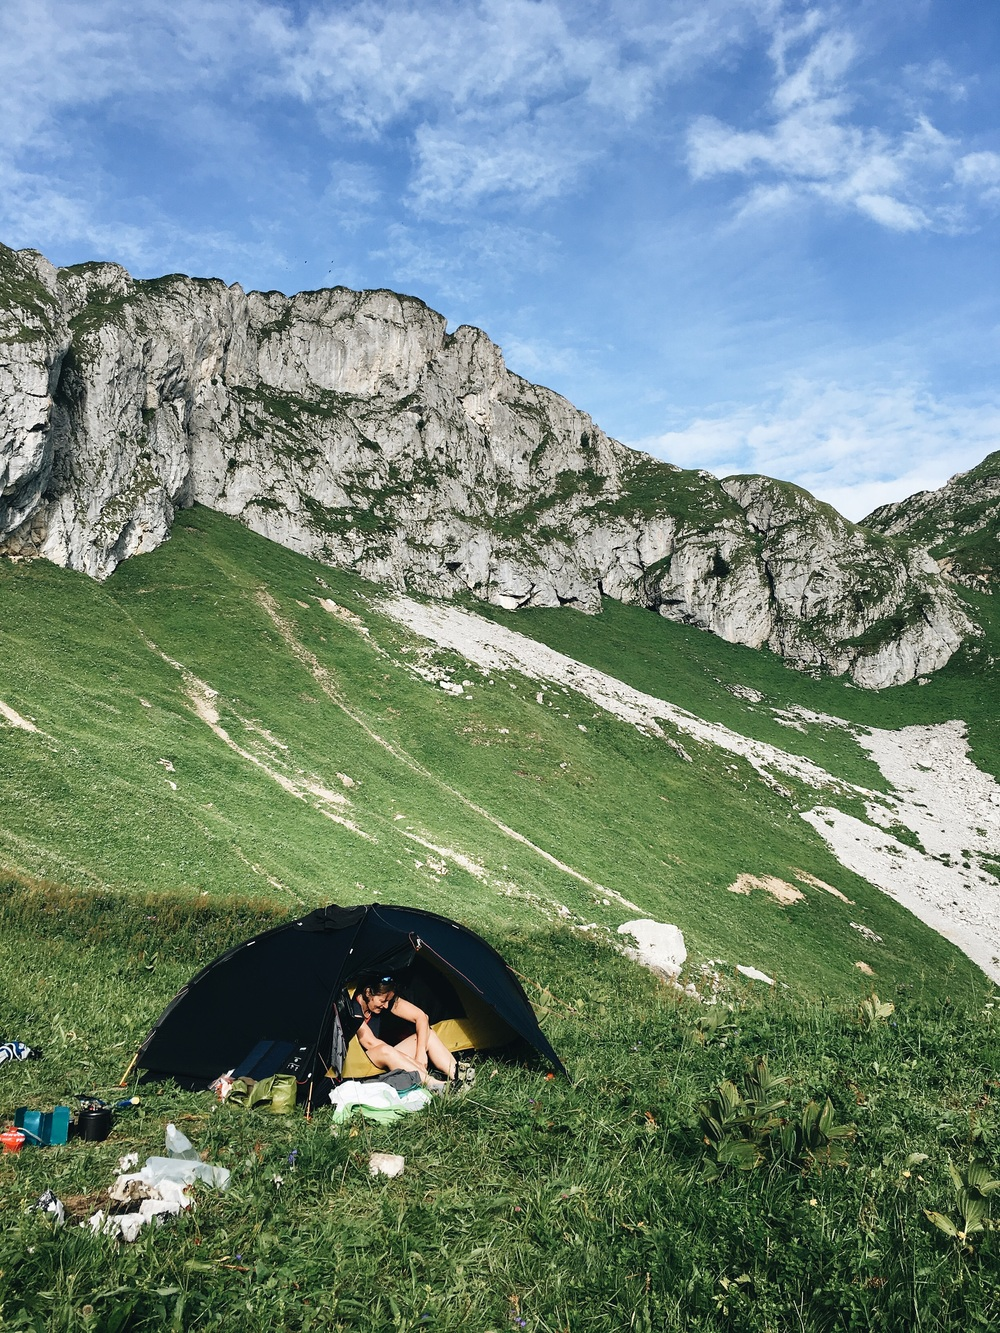 Wild camping over looking Lac De Darbon.